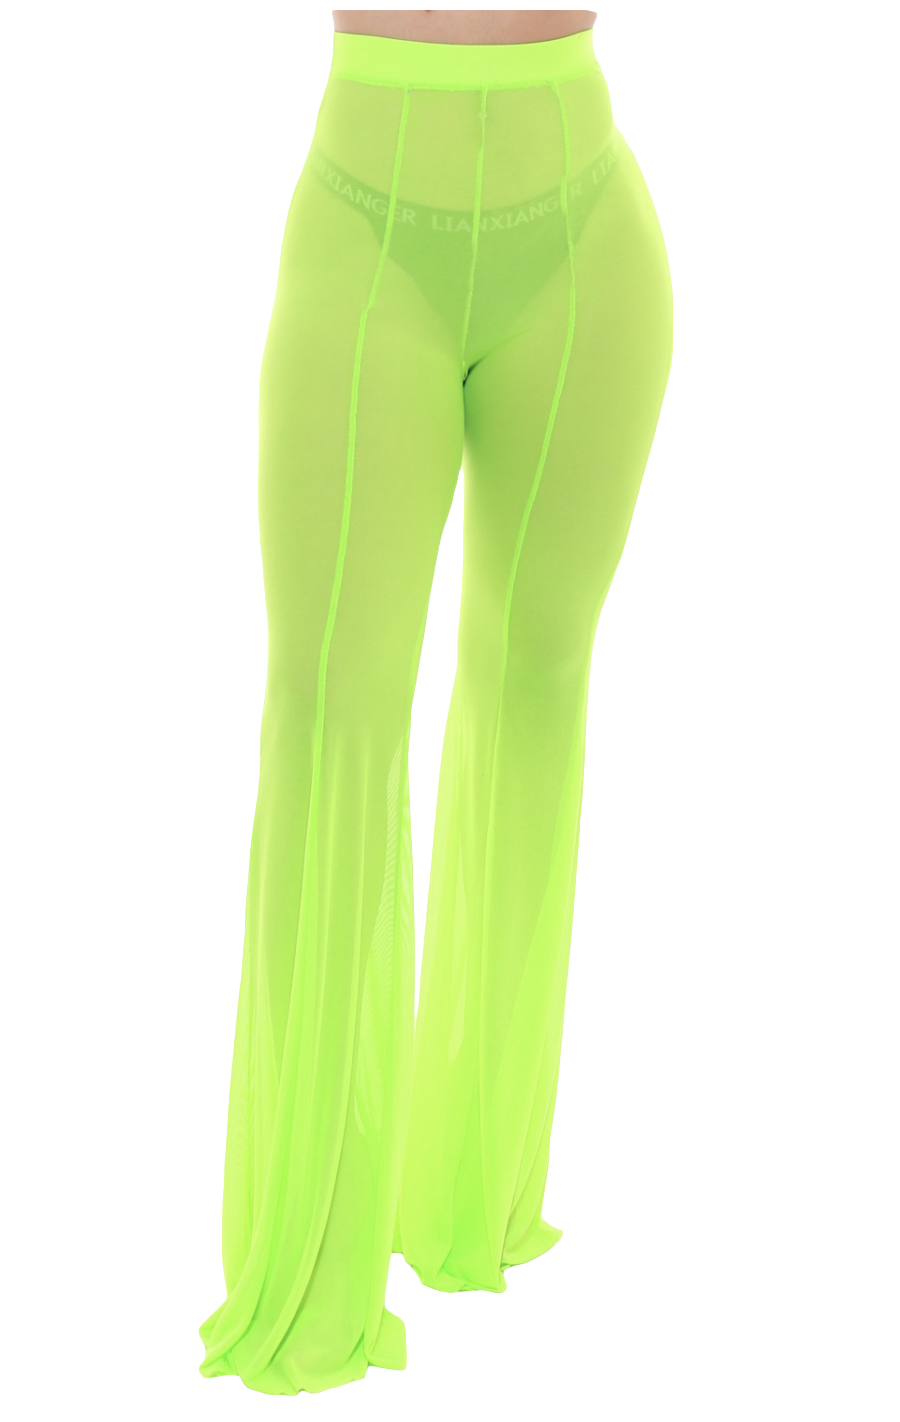 Mesh Pants {3 colors available} - The House of Stylez